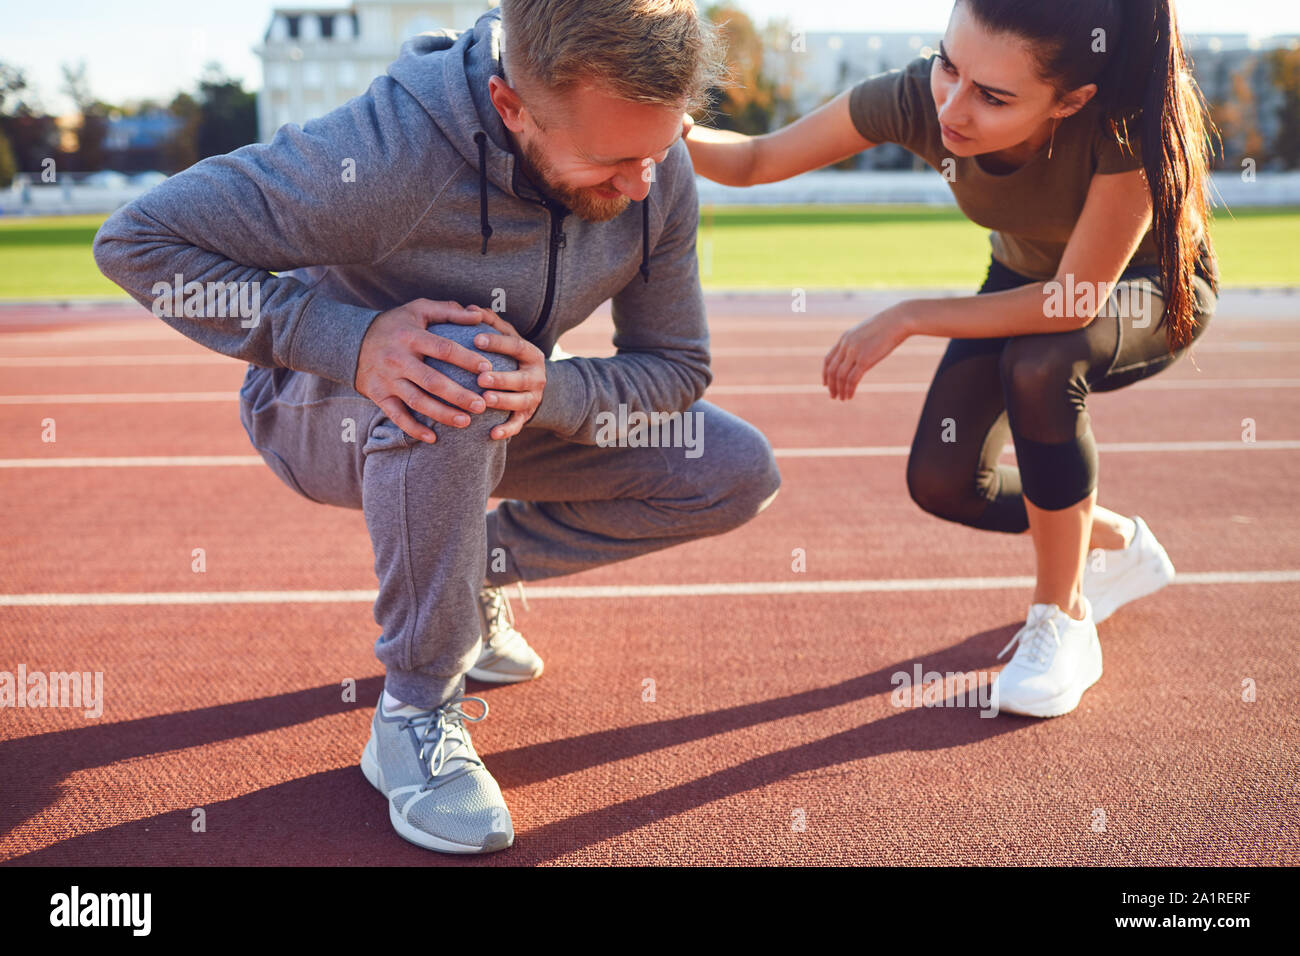 Knee injury in training. A male injured his leg during exercise. Stock Photo